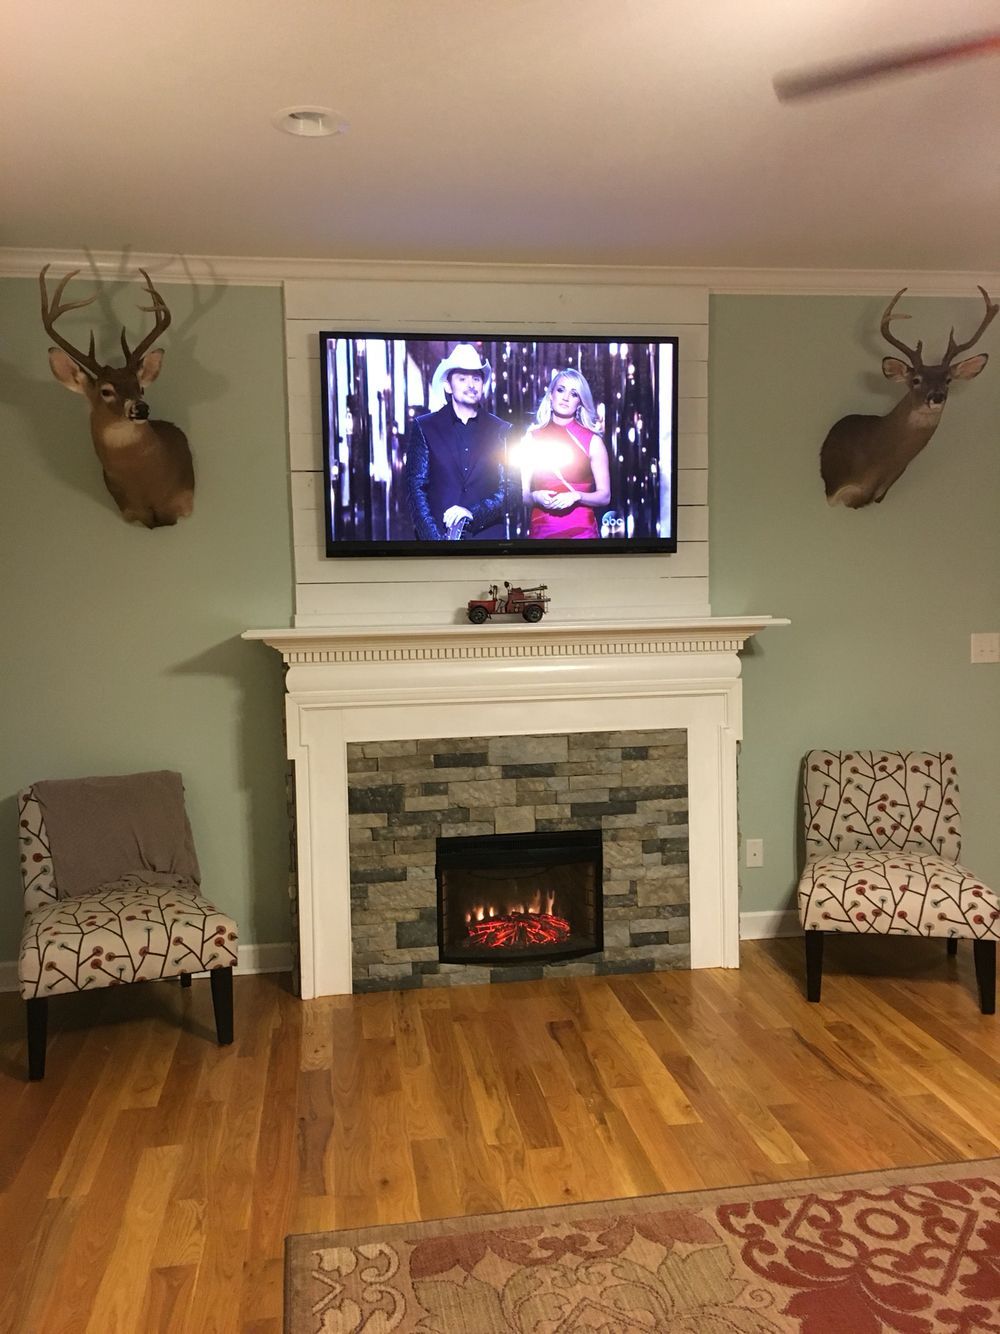 DIY fireplace surround for electric insert. Used old